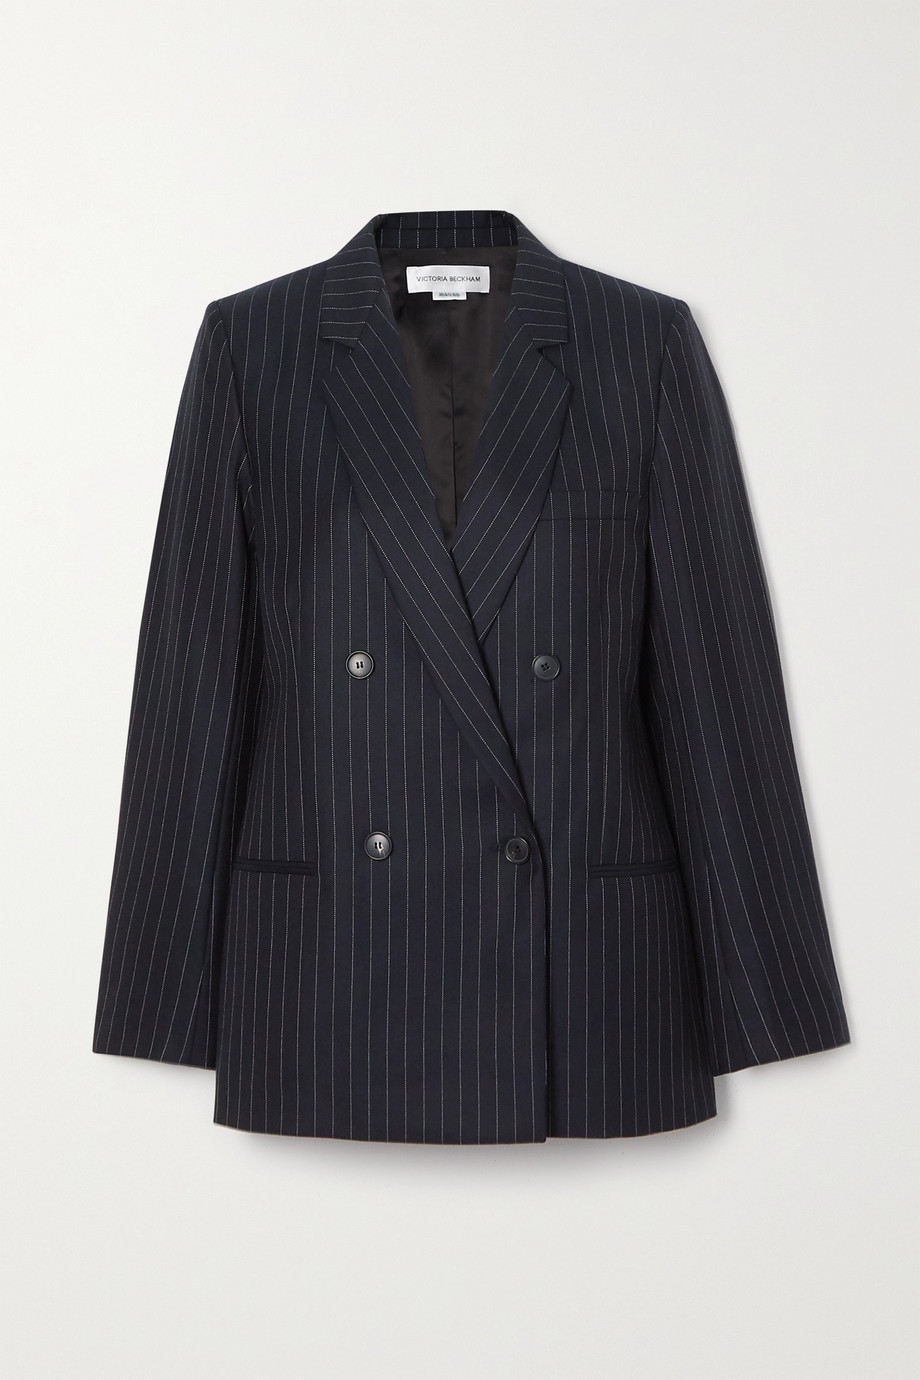 Victoria Beckham Double-breasted pinstriped wool-twill blazer